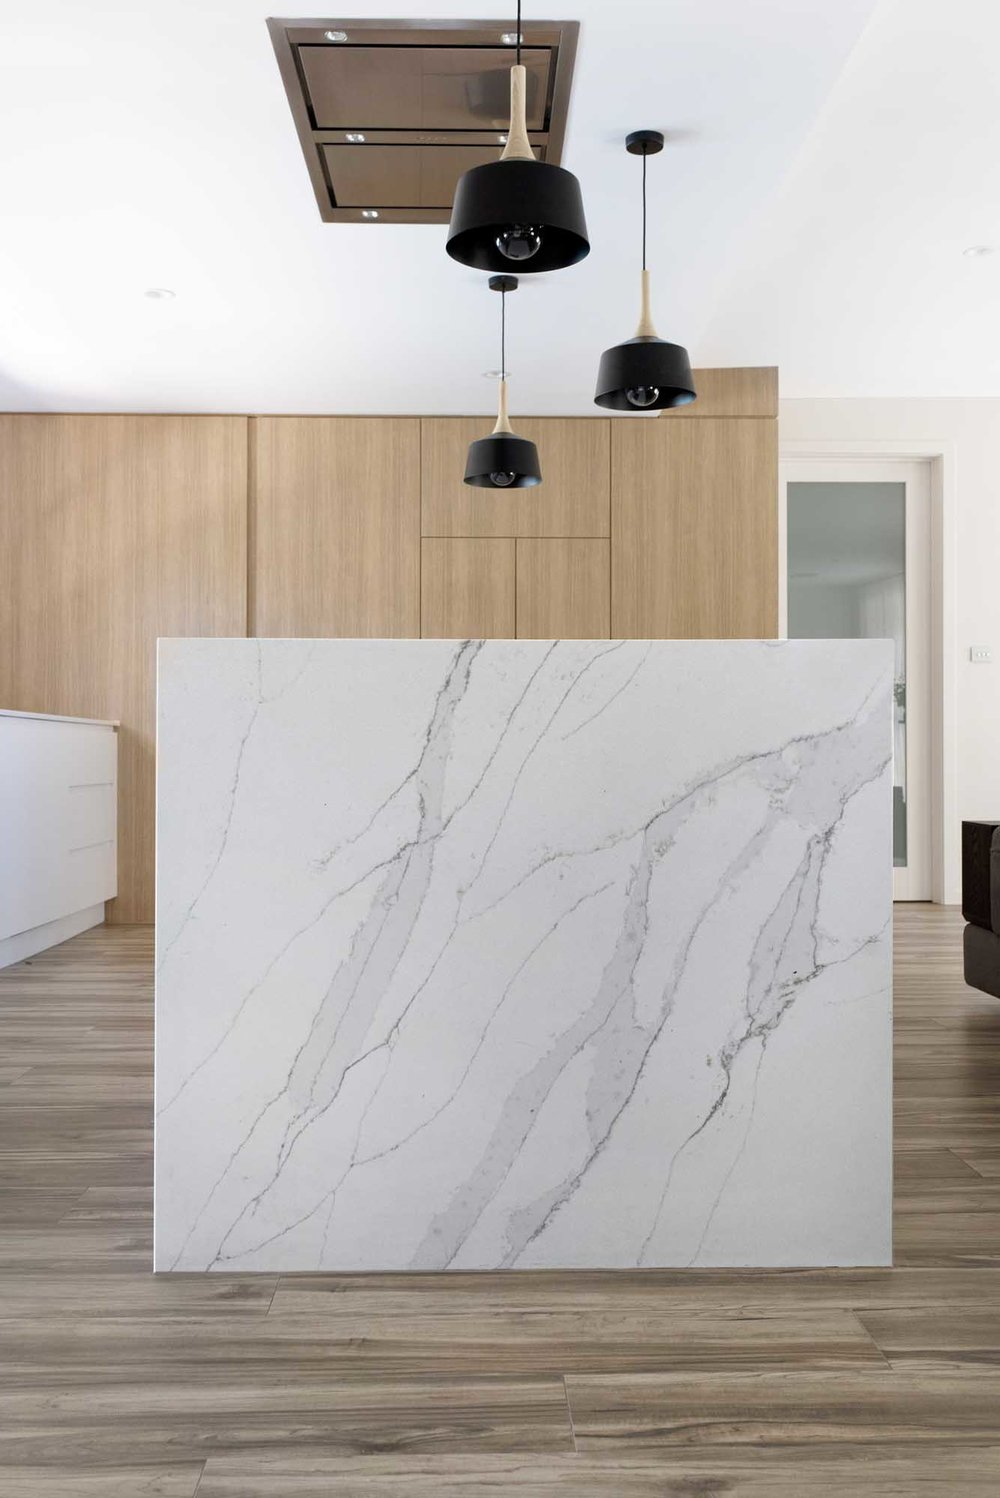 Red Hill 23 Golden Grove Pioneer Kitchens_11.jpg